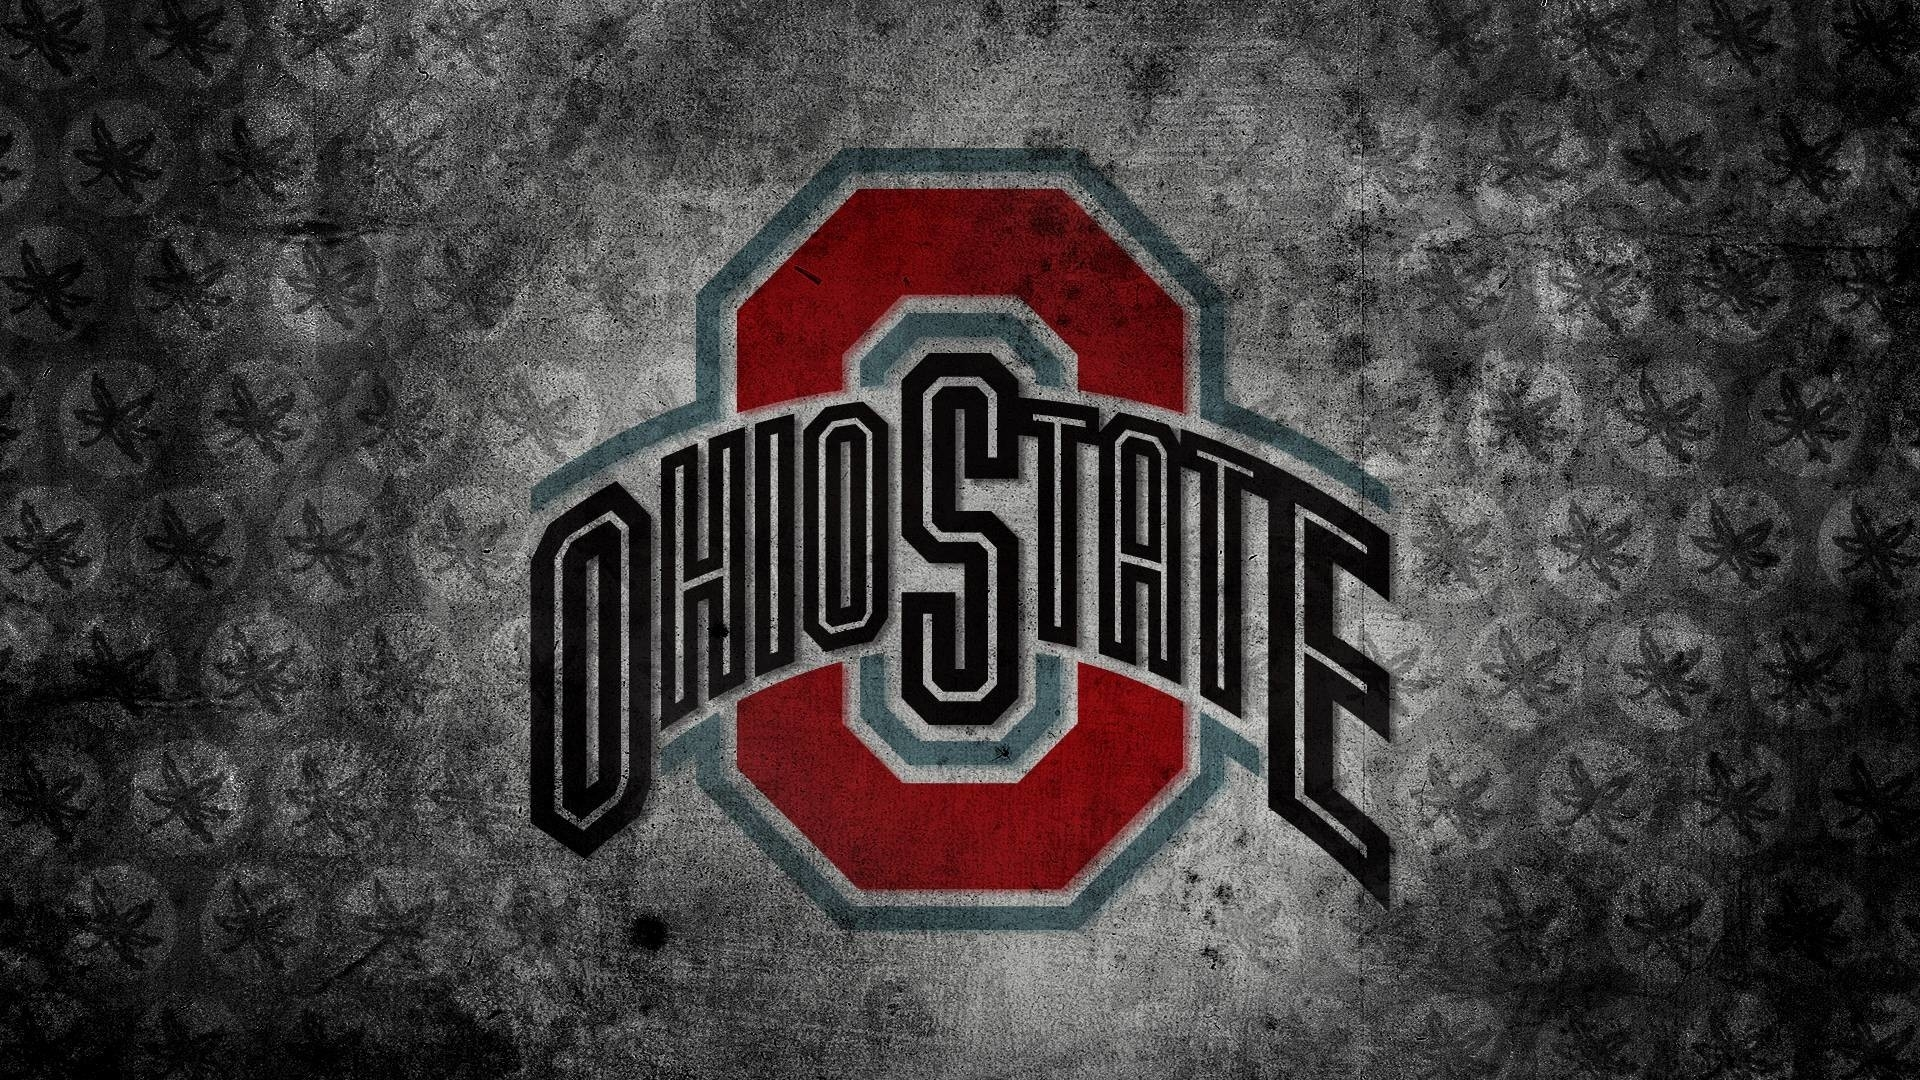 ohio state buckeyes wallpaper hd (86+ images)